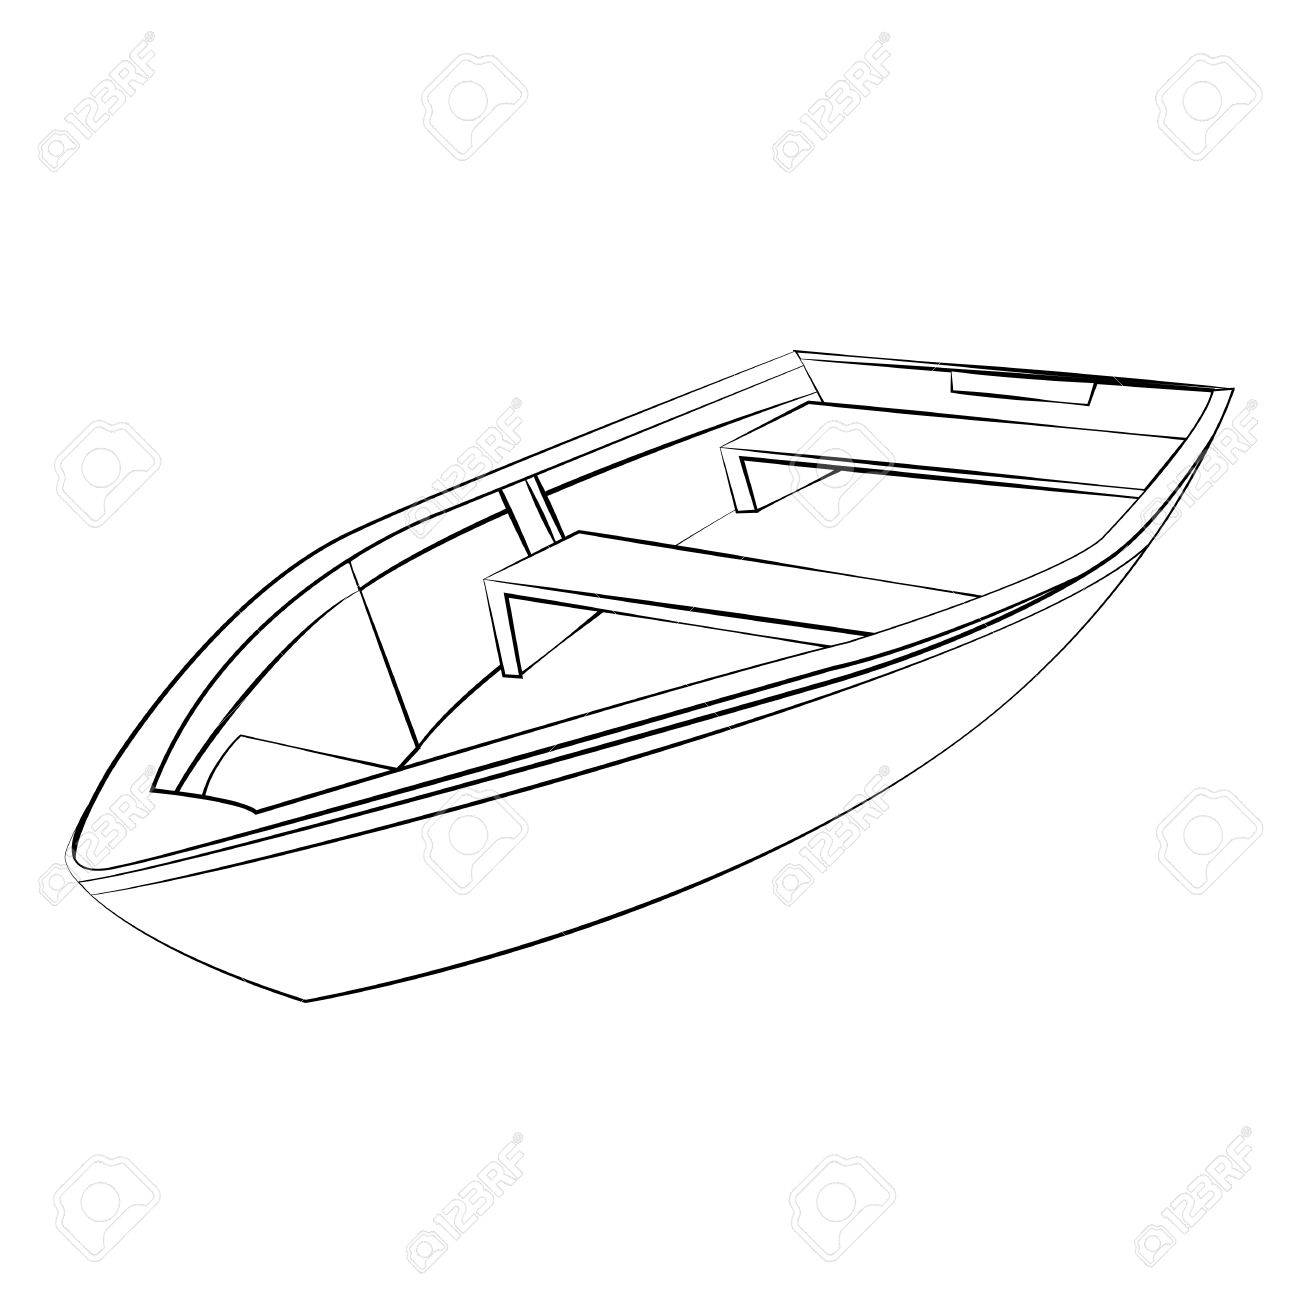 1300x1300 Black Outline Vector Boat On White Background. Royalty Free